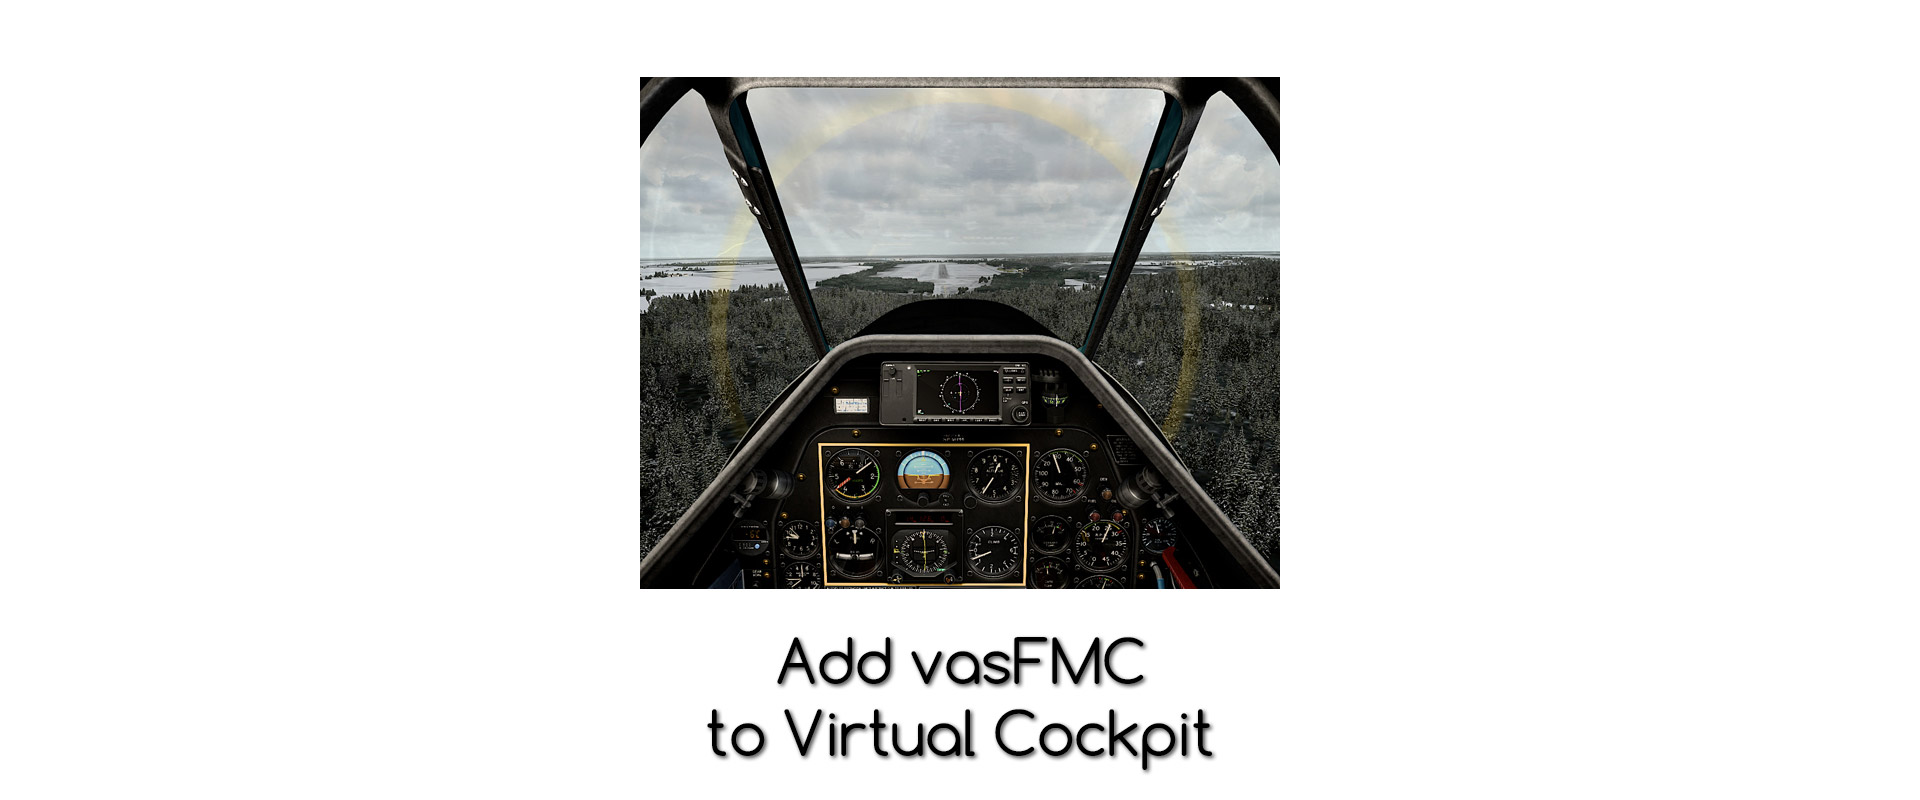 Add vasFMC to Virtual Cockpit